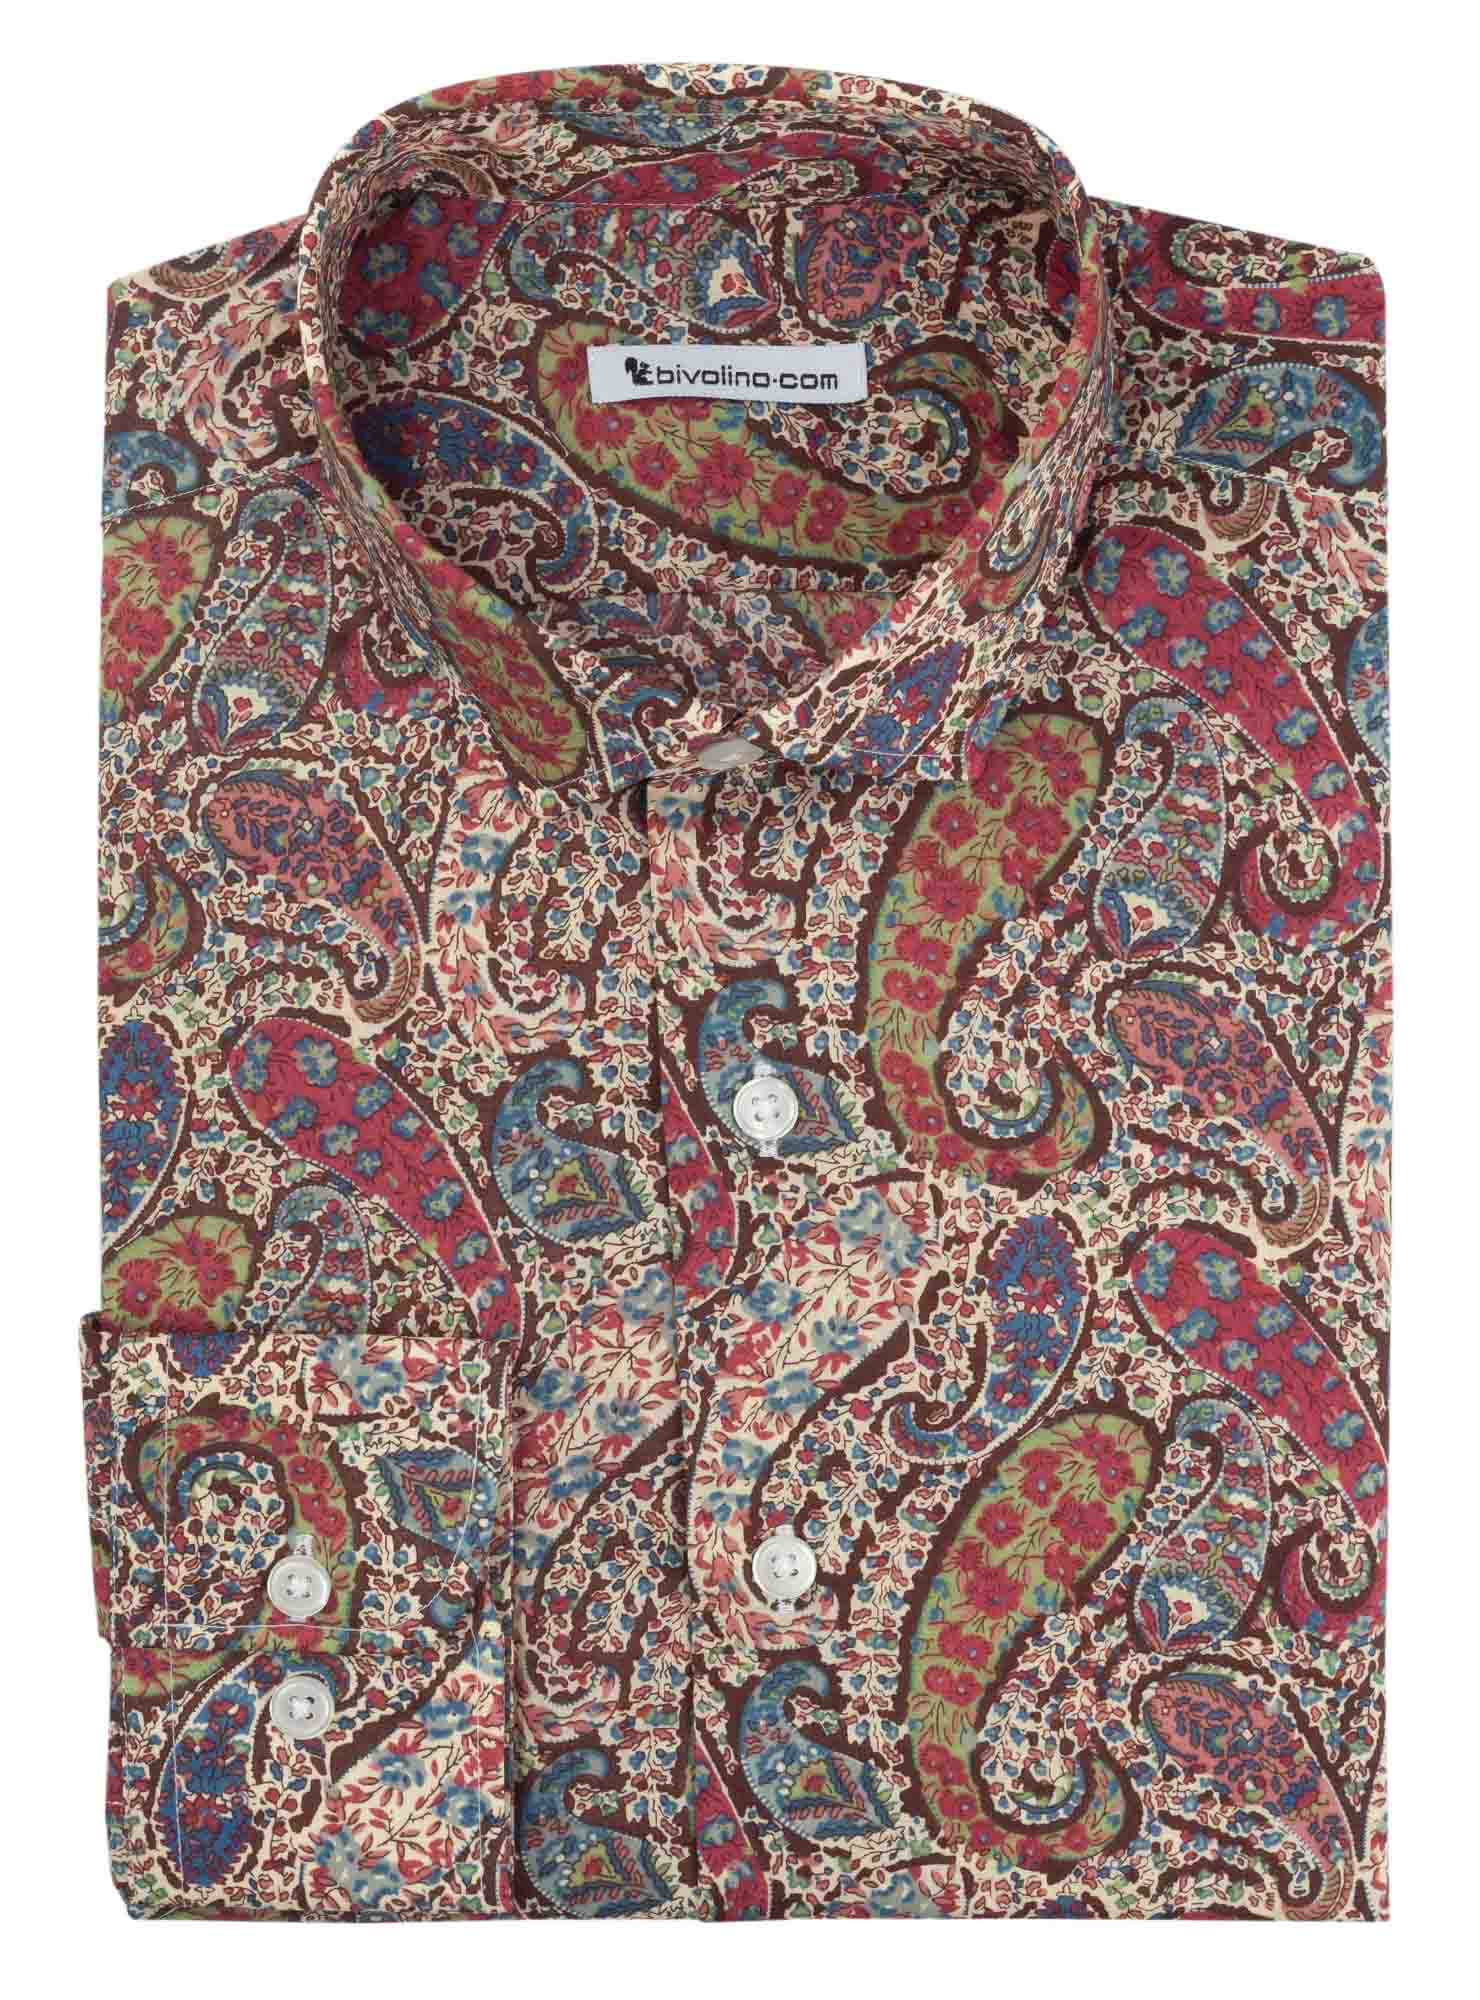 ALBERTIONI - Chemise Homme fleur Liberty of London - Liberty 2